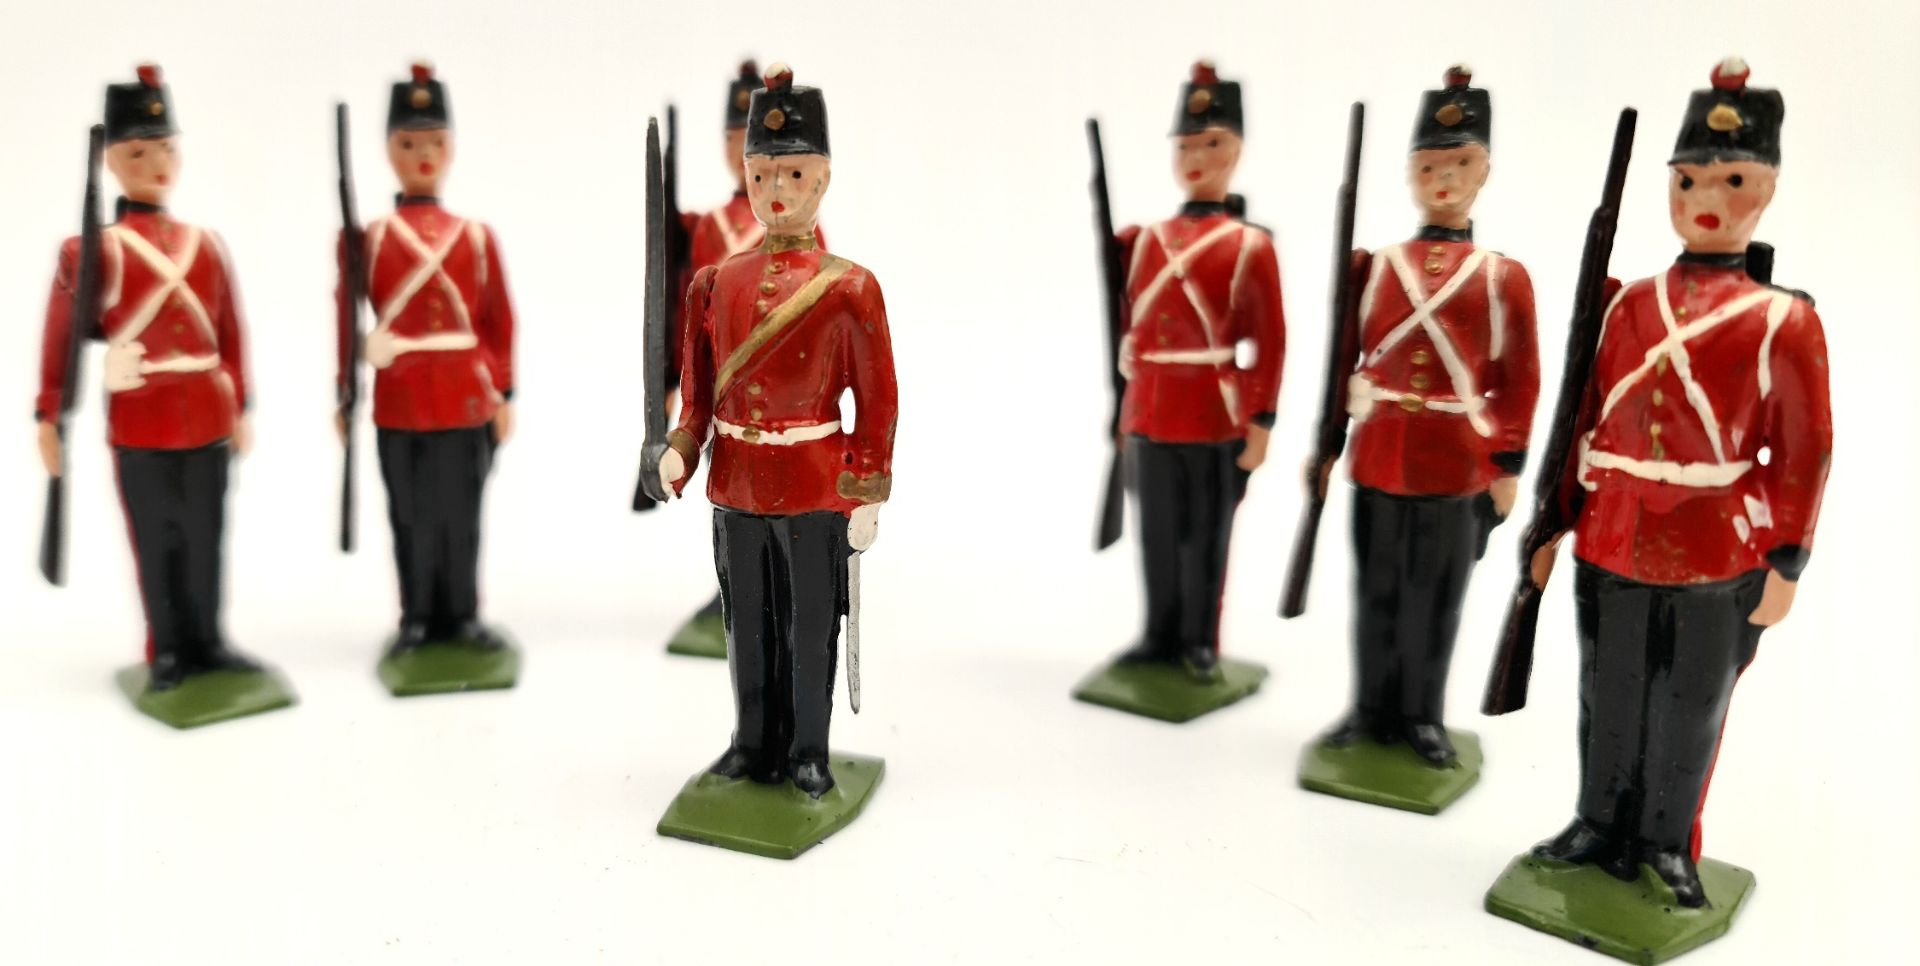 Vintage 7 Britain's Cast Metal Toy Soldiers 6cm tall - Image 2 of 3